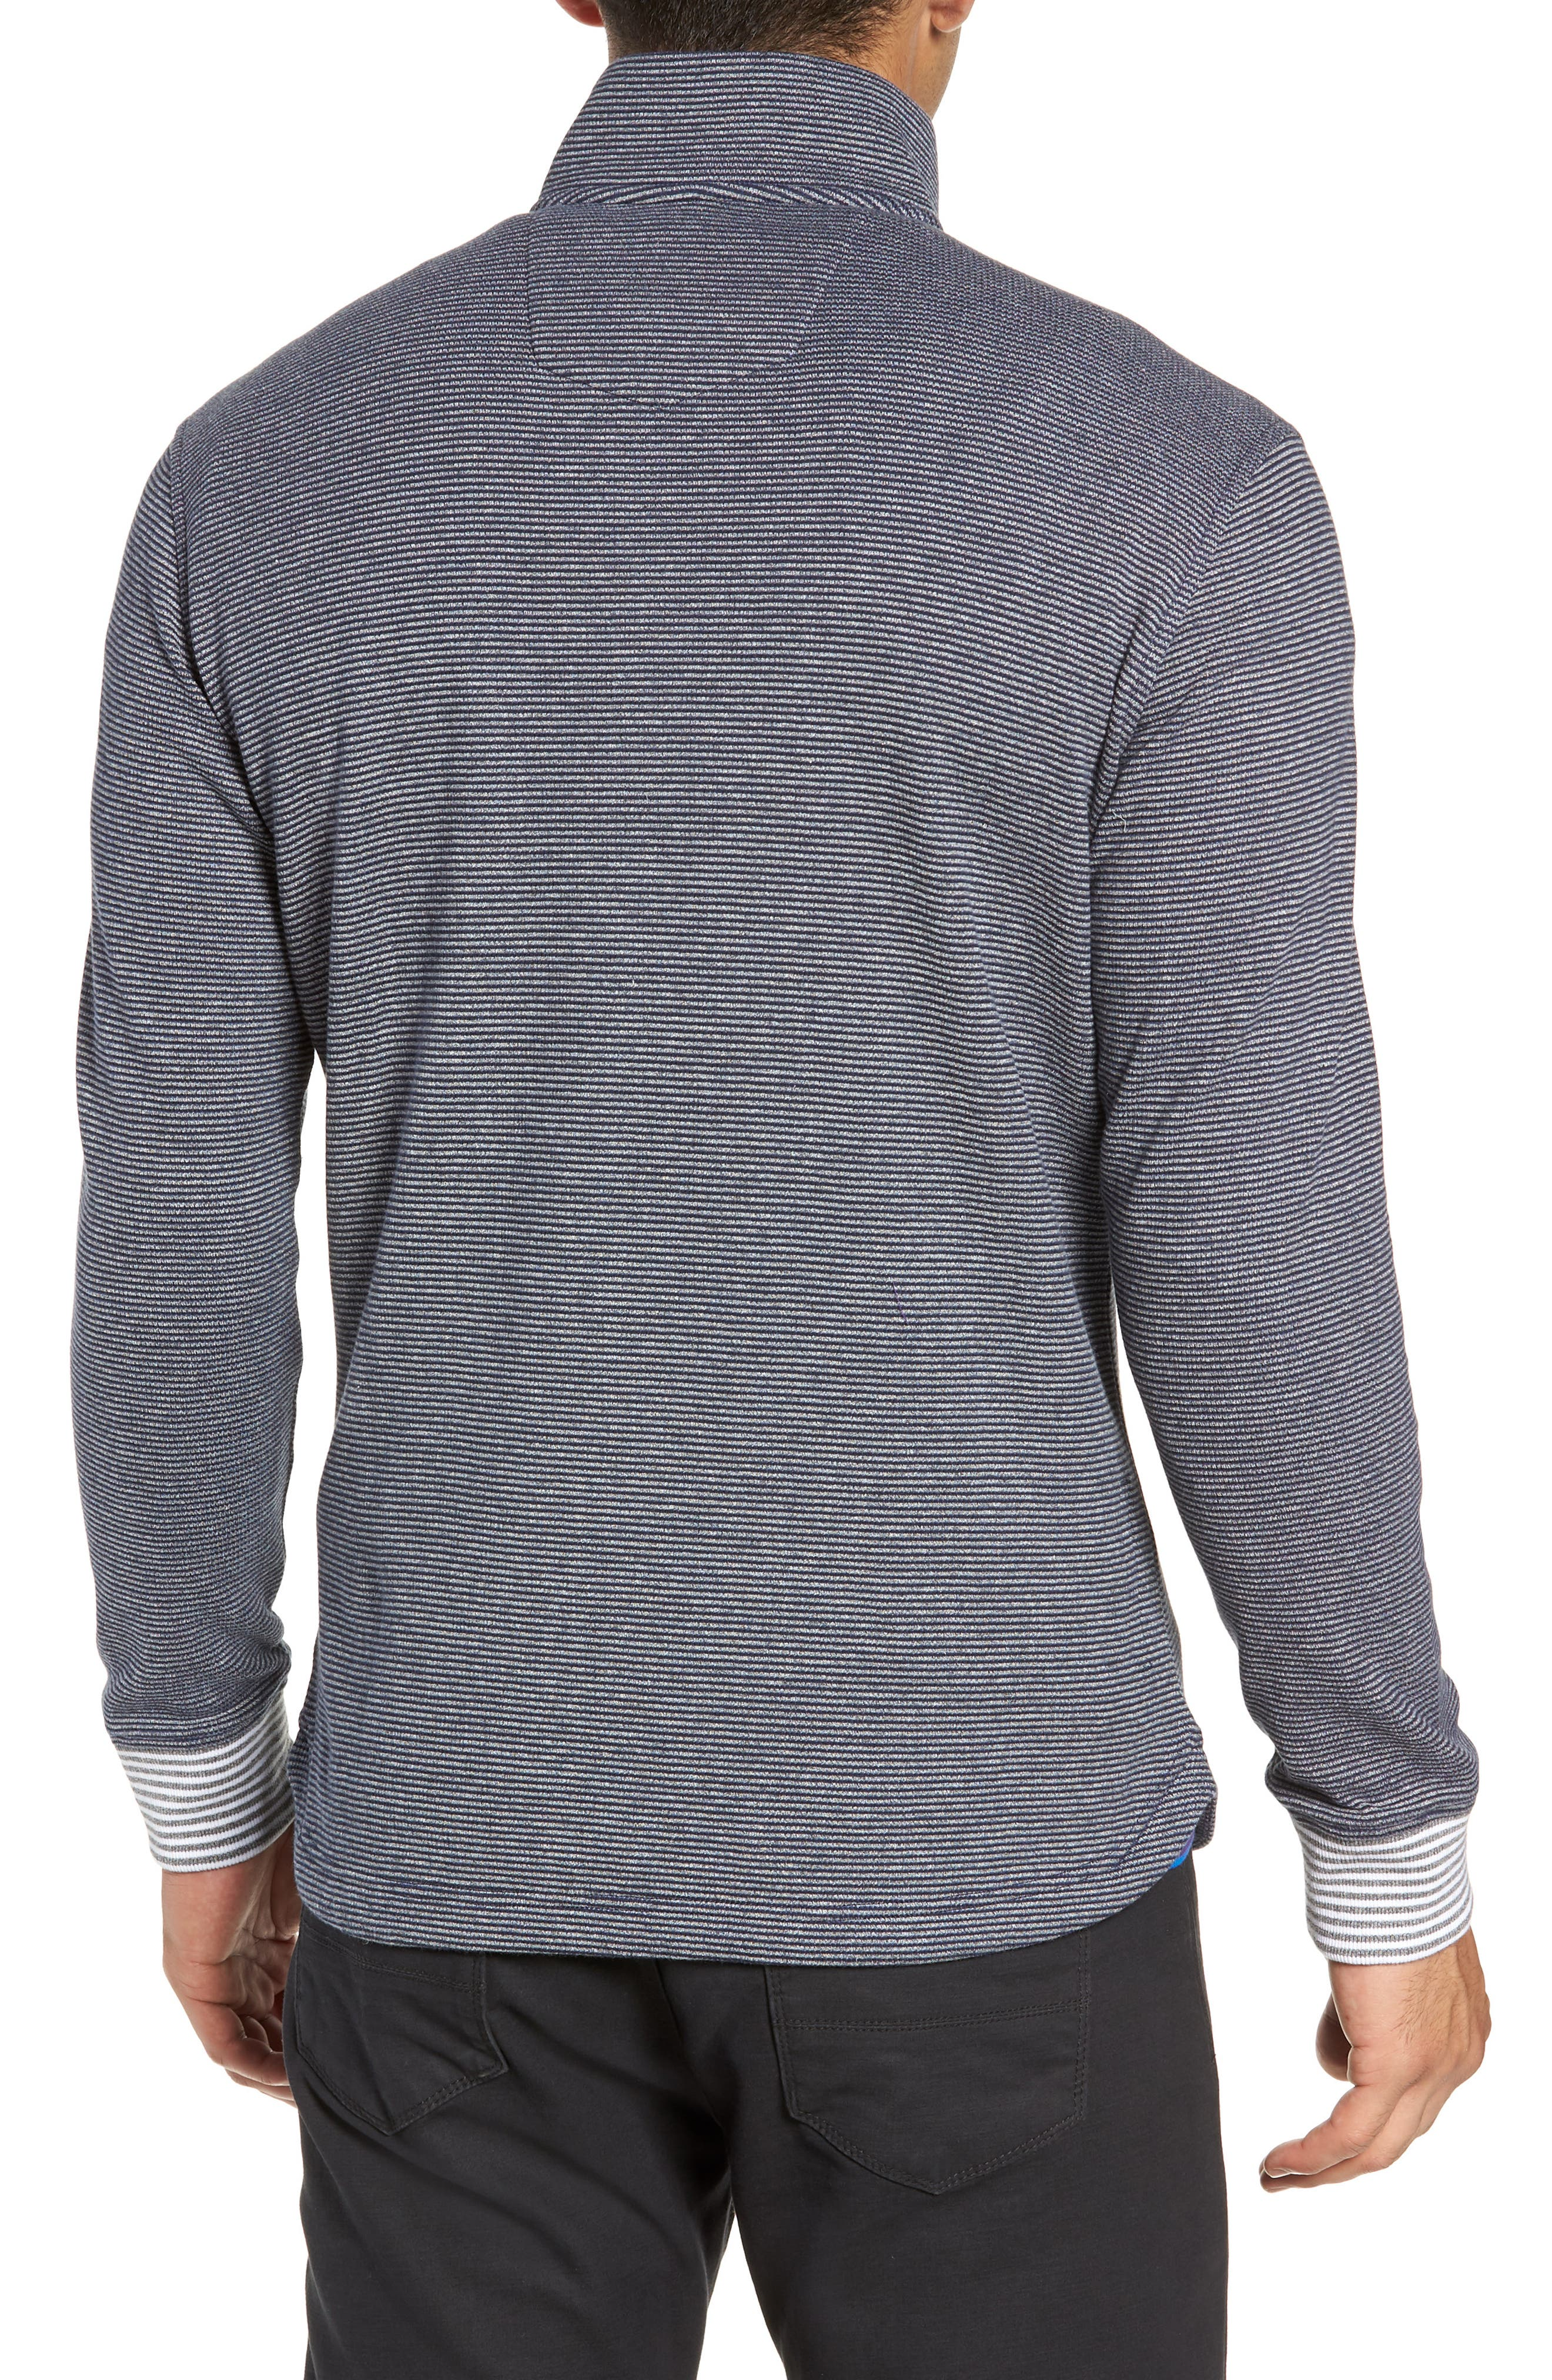 Kitson Classic Fit Stripe Quarter Zip Sweater,                             Alternate thumbnail 2, color,                             HEATHER NAVY